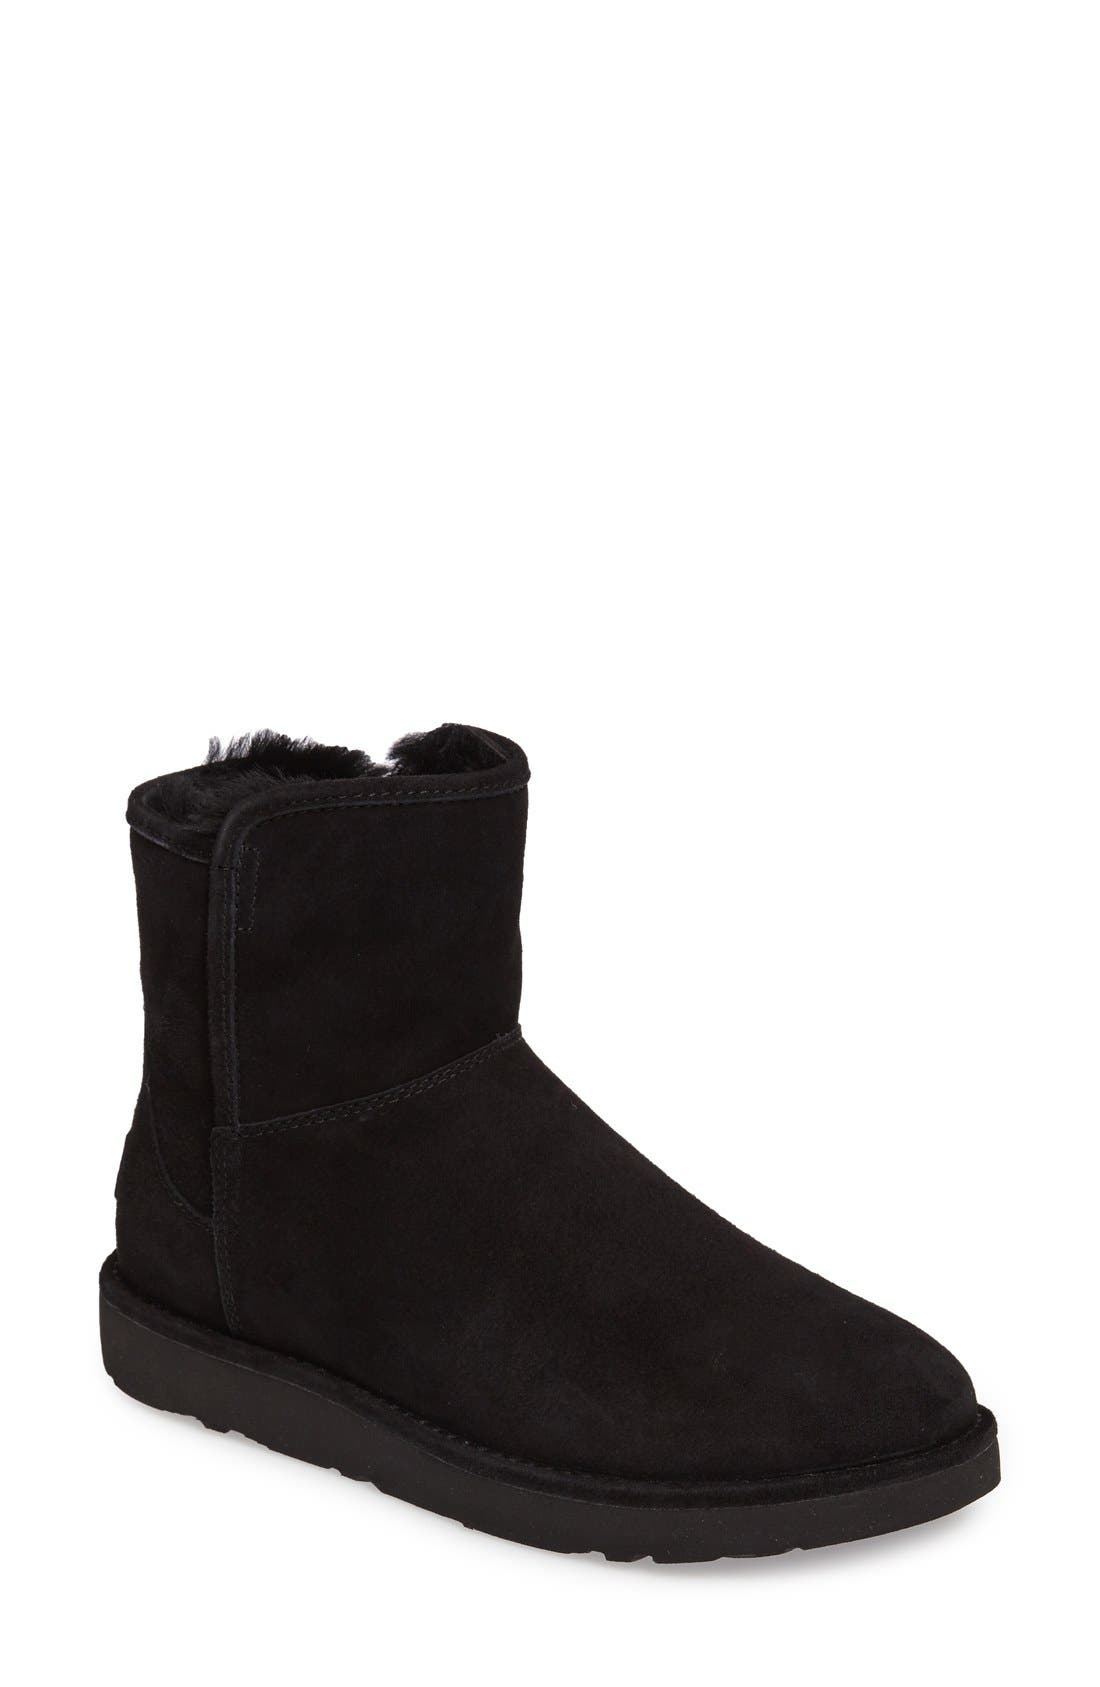 Abree II Mini Boot,                             Main thumbnail 1, color,                             NERO SUEDE